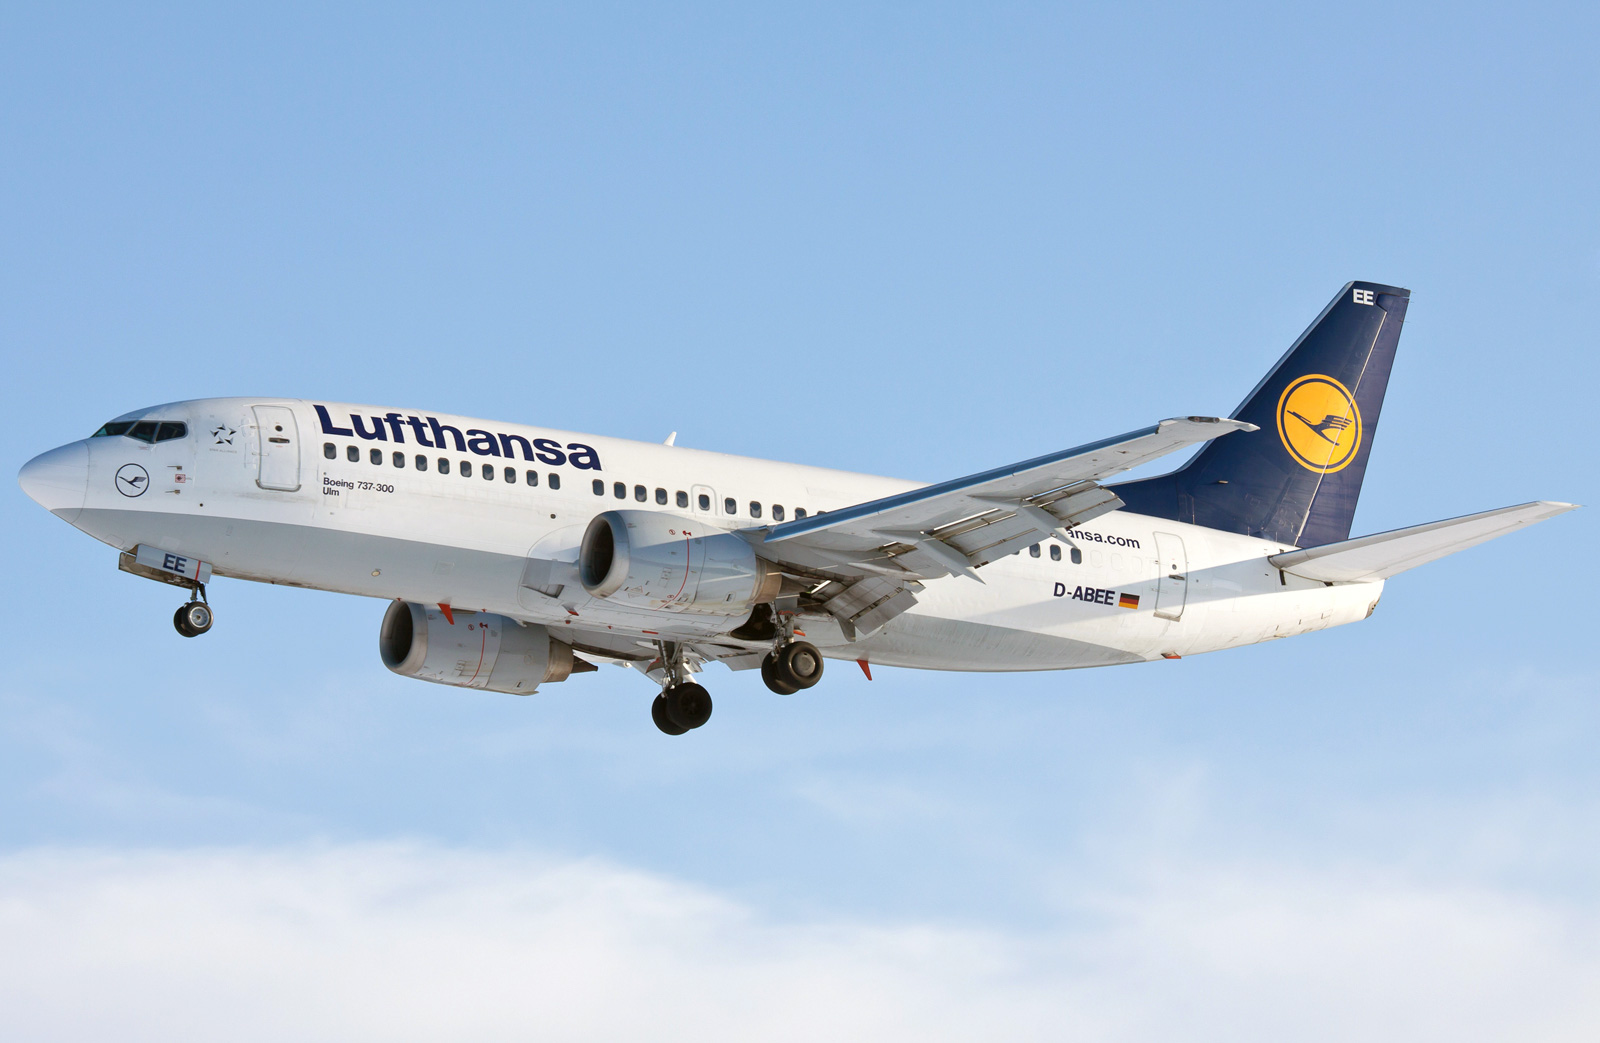 Boeing 737 300 Lufthansa Photos And Description Of The Plane